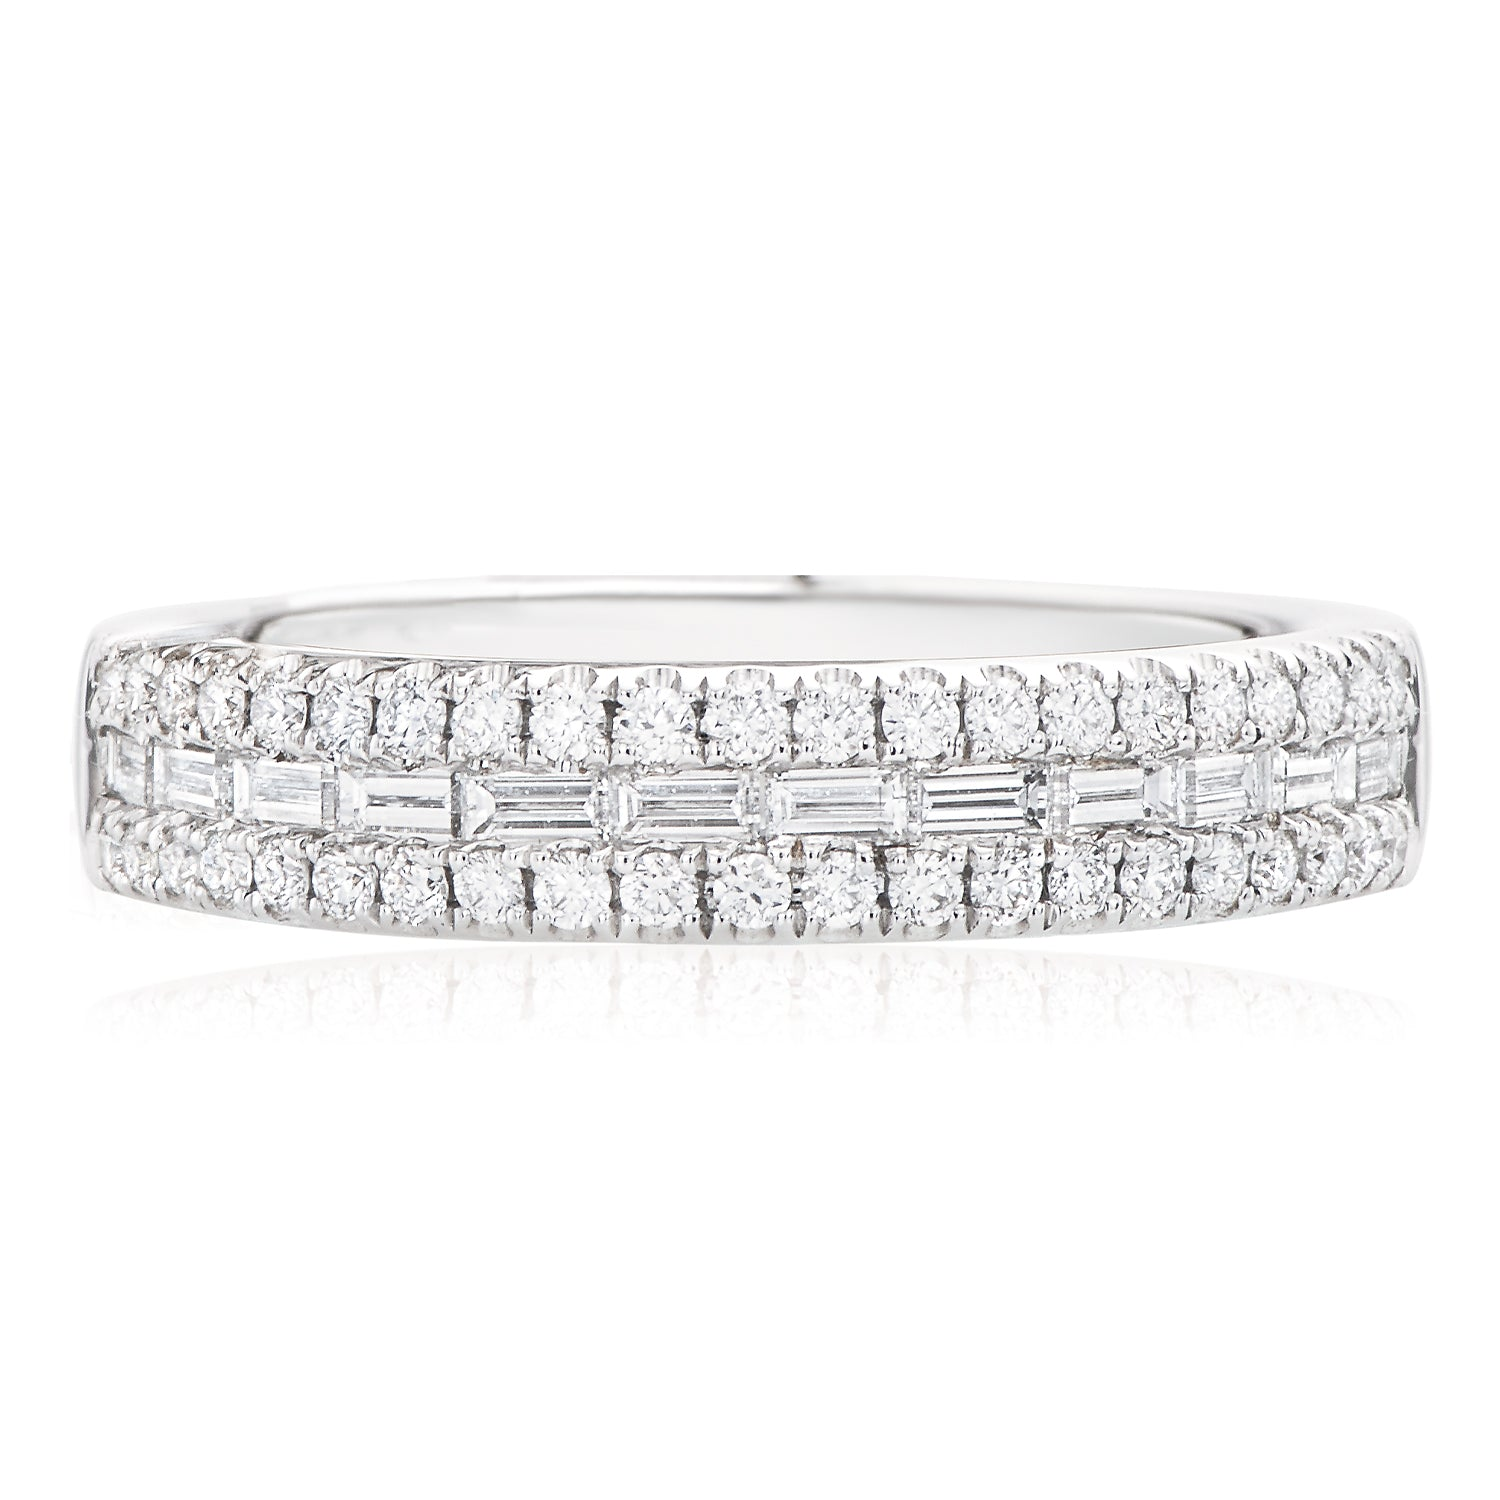 Rand 18ct White Gold Round Brillant & Baguette Cut with 0.60 CARAT tw of Diamonds